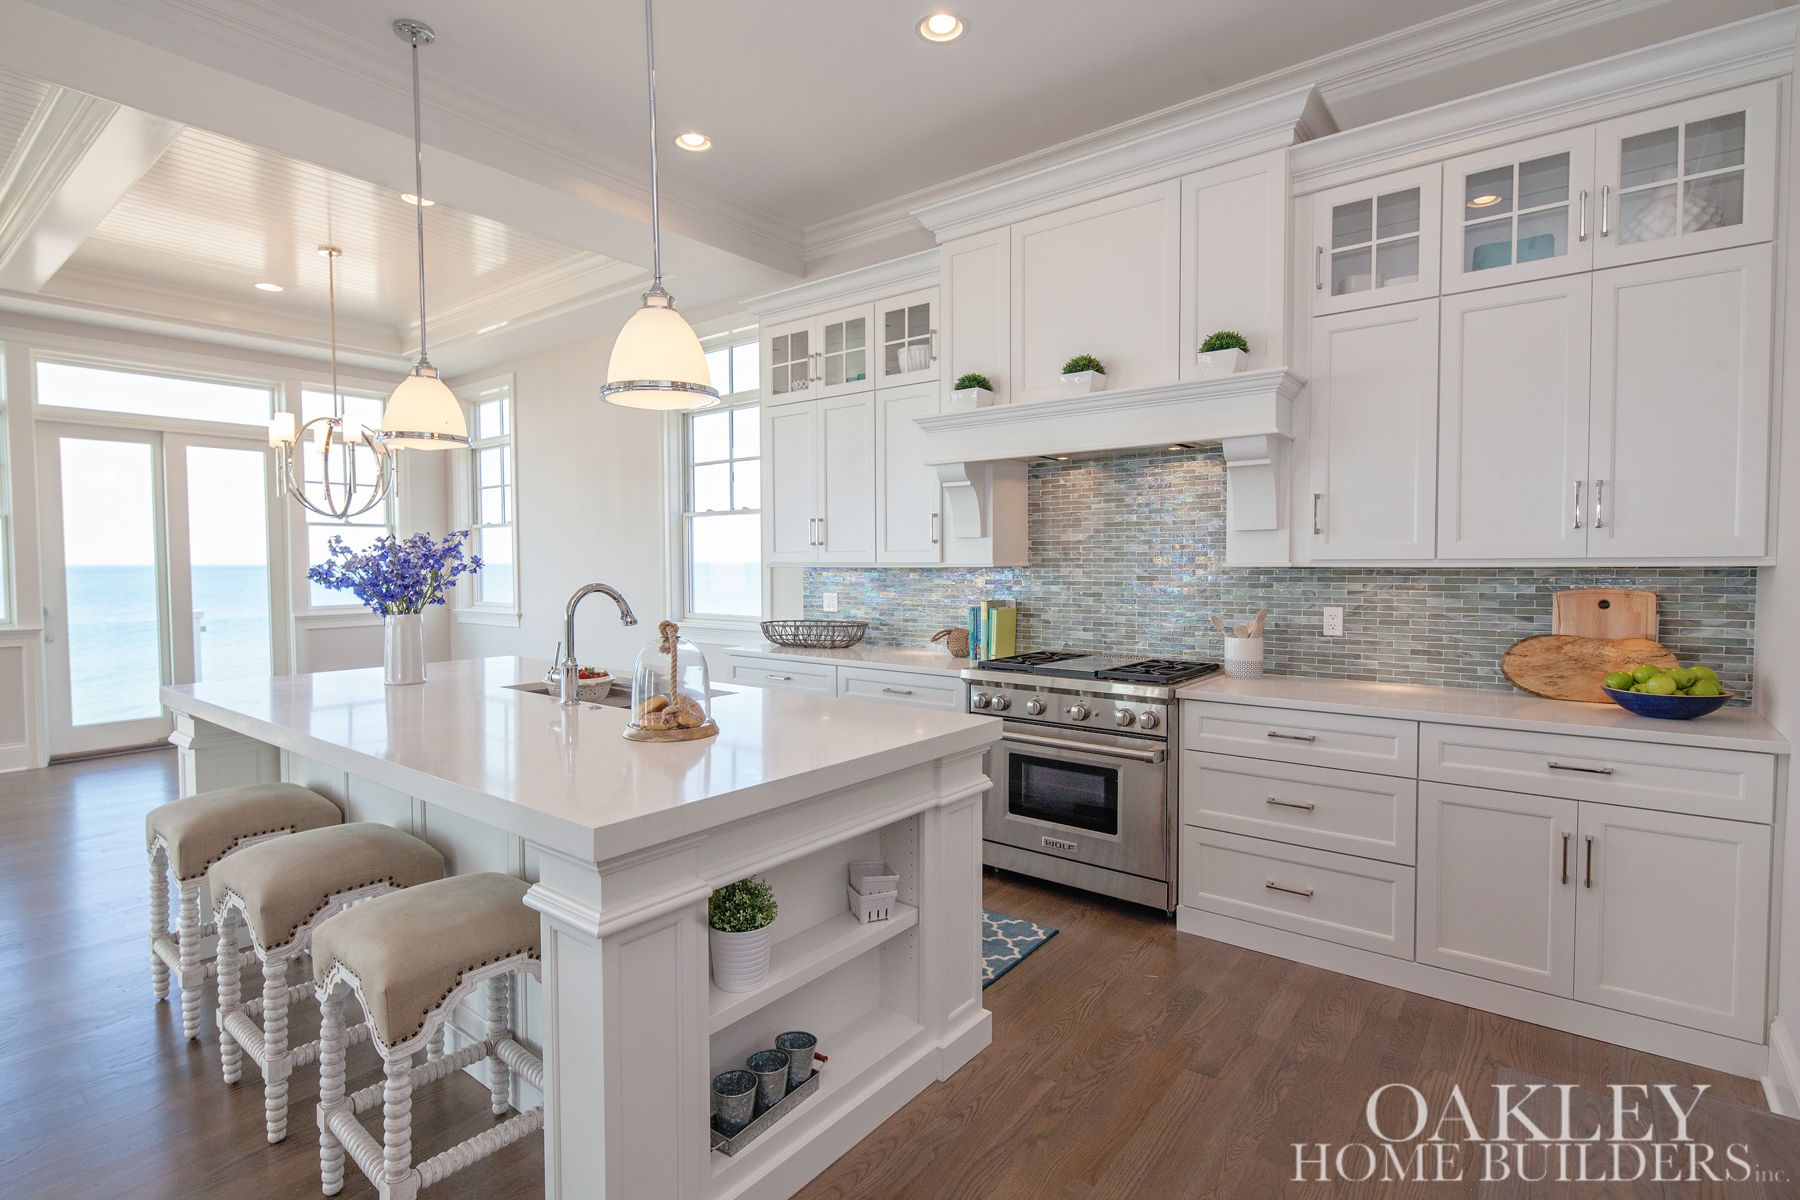 Beautiful White Kitchen Home Builderus site with quite a few